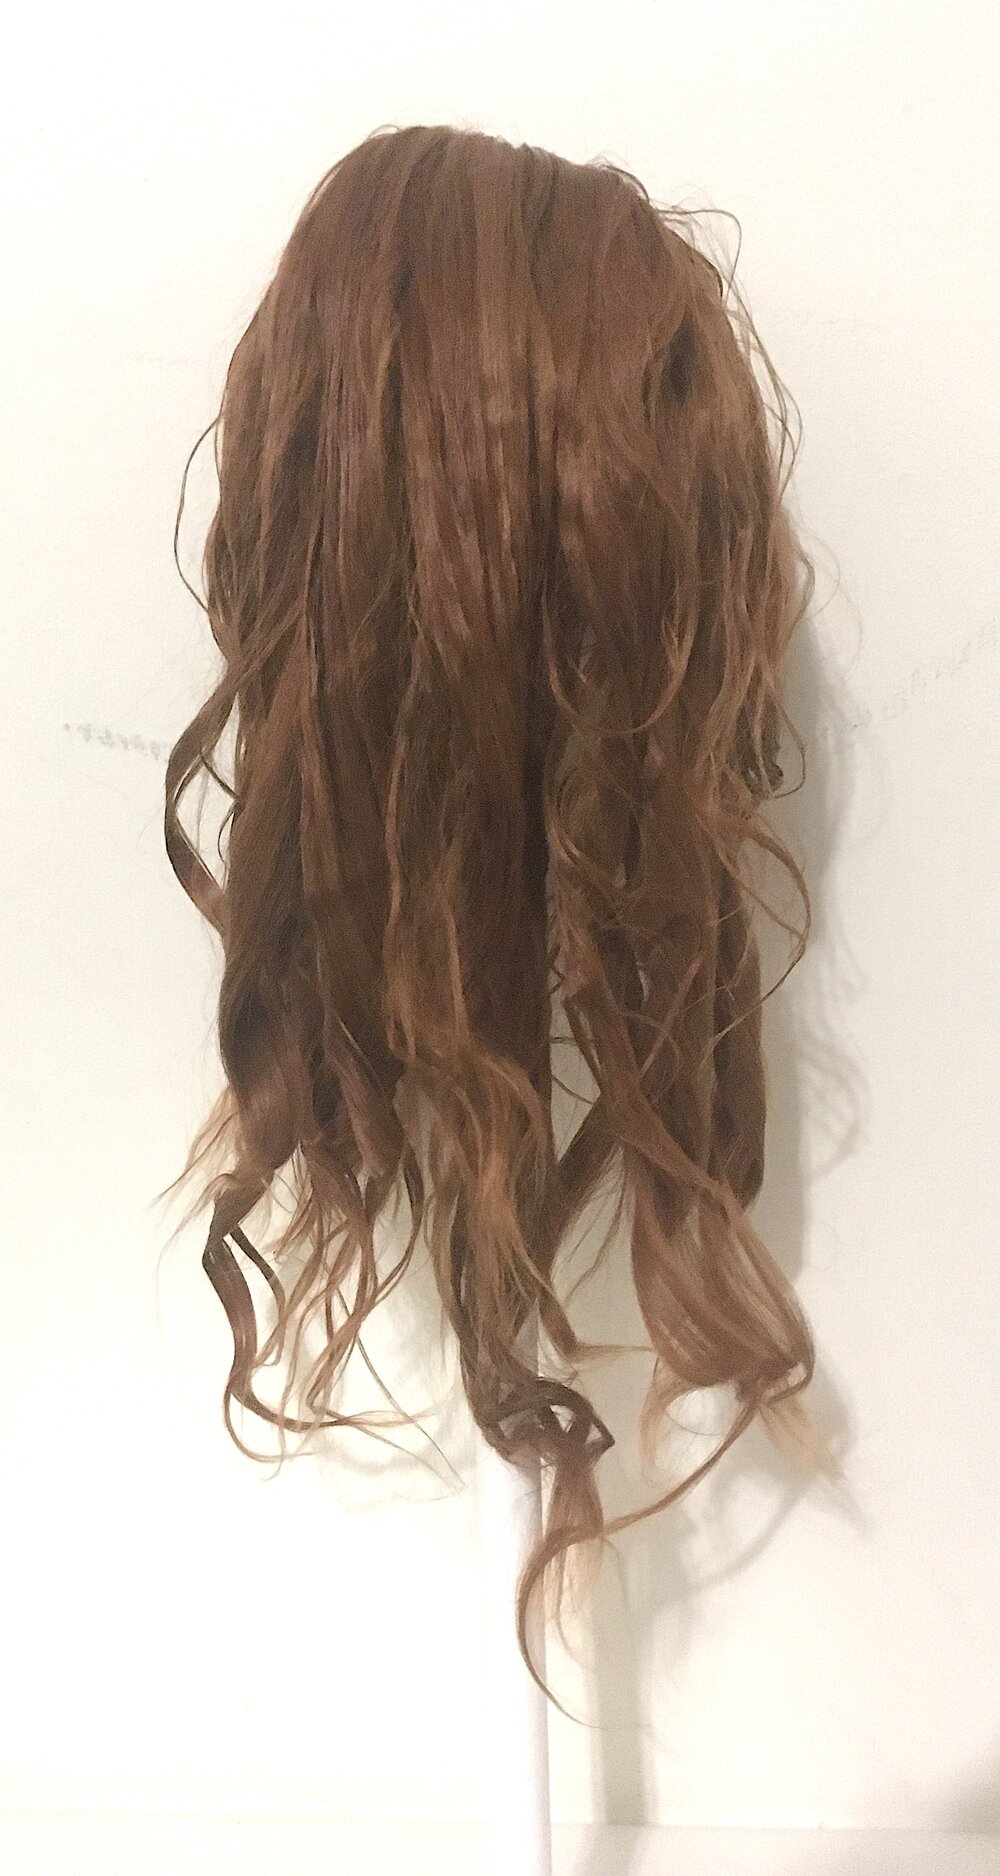 COMBED AND WASHED 1//2OZ SUSIE Q SURI ALPACA HAIR CHANNEL